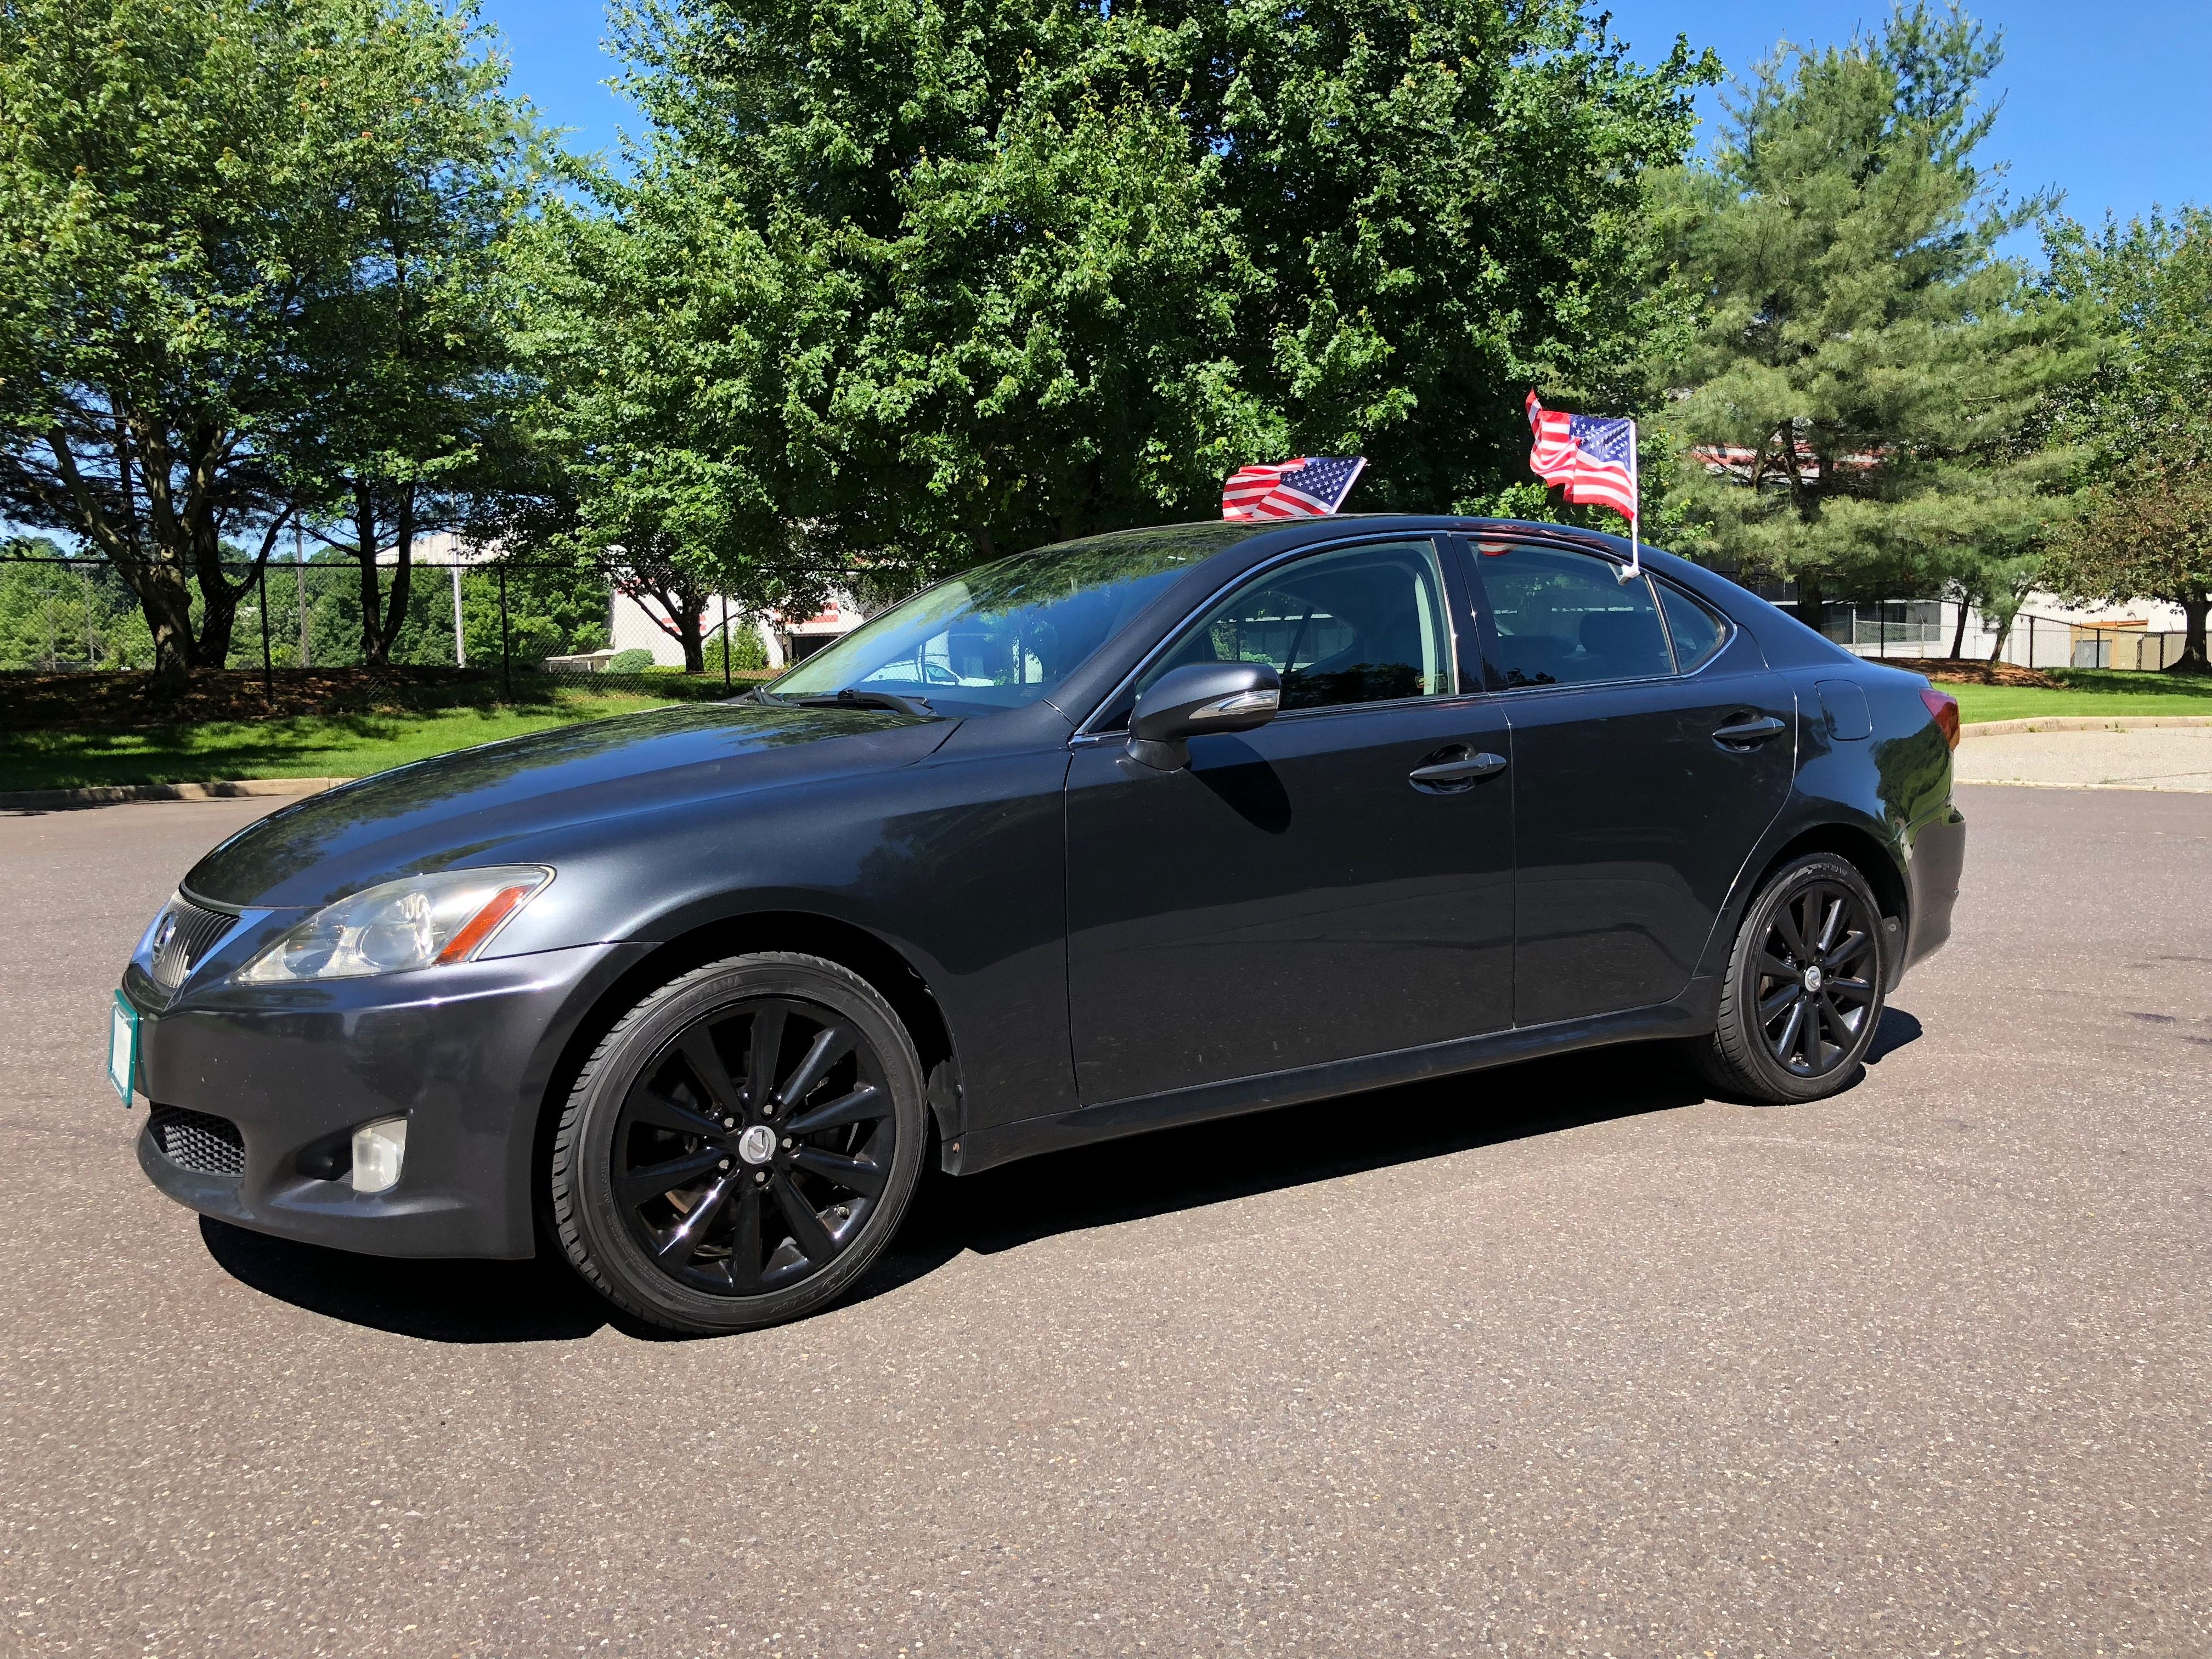 Certified 2010 Lexus IS250 AWD Clean Carfax 8562555927